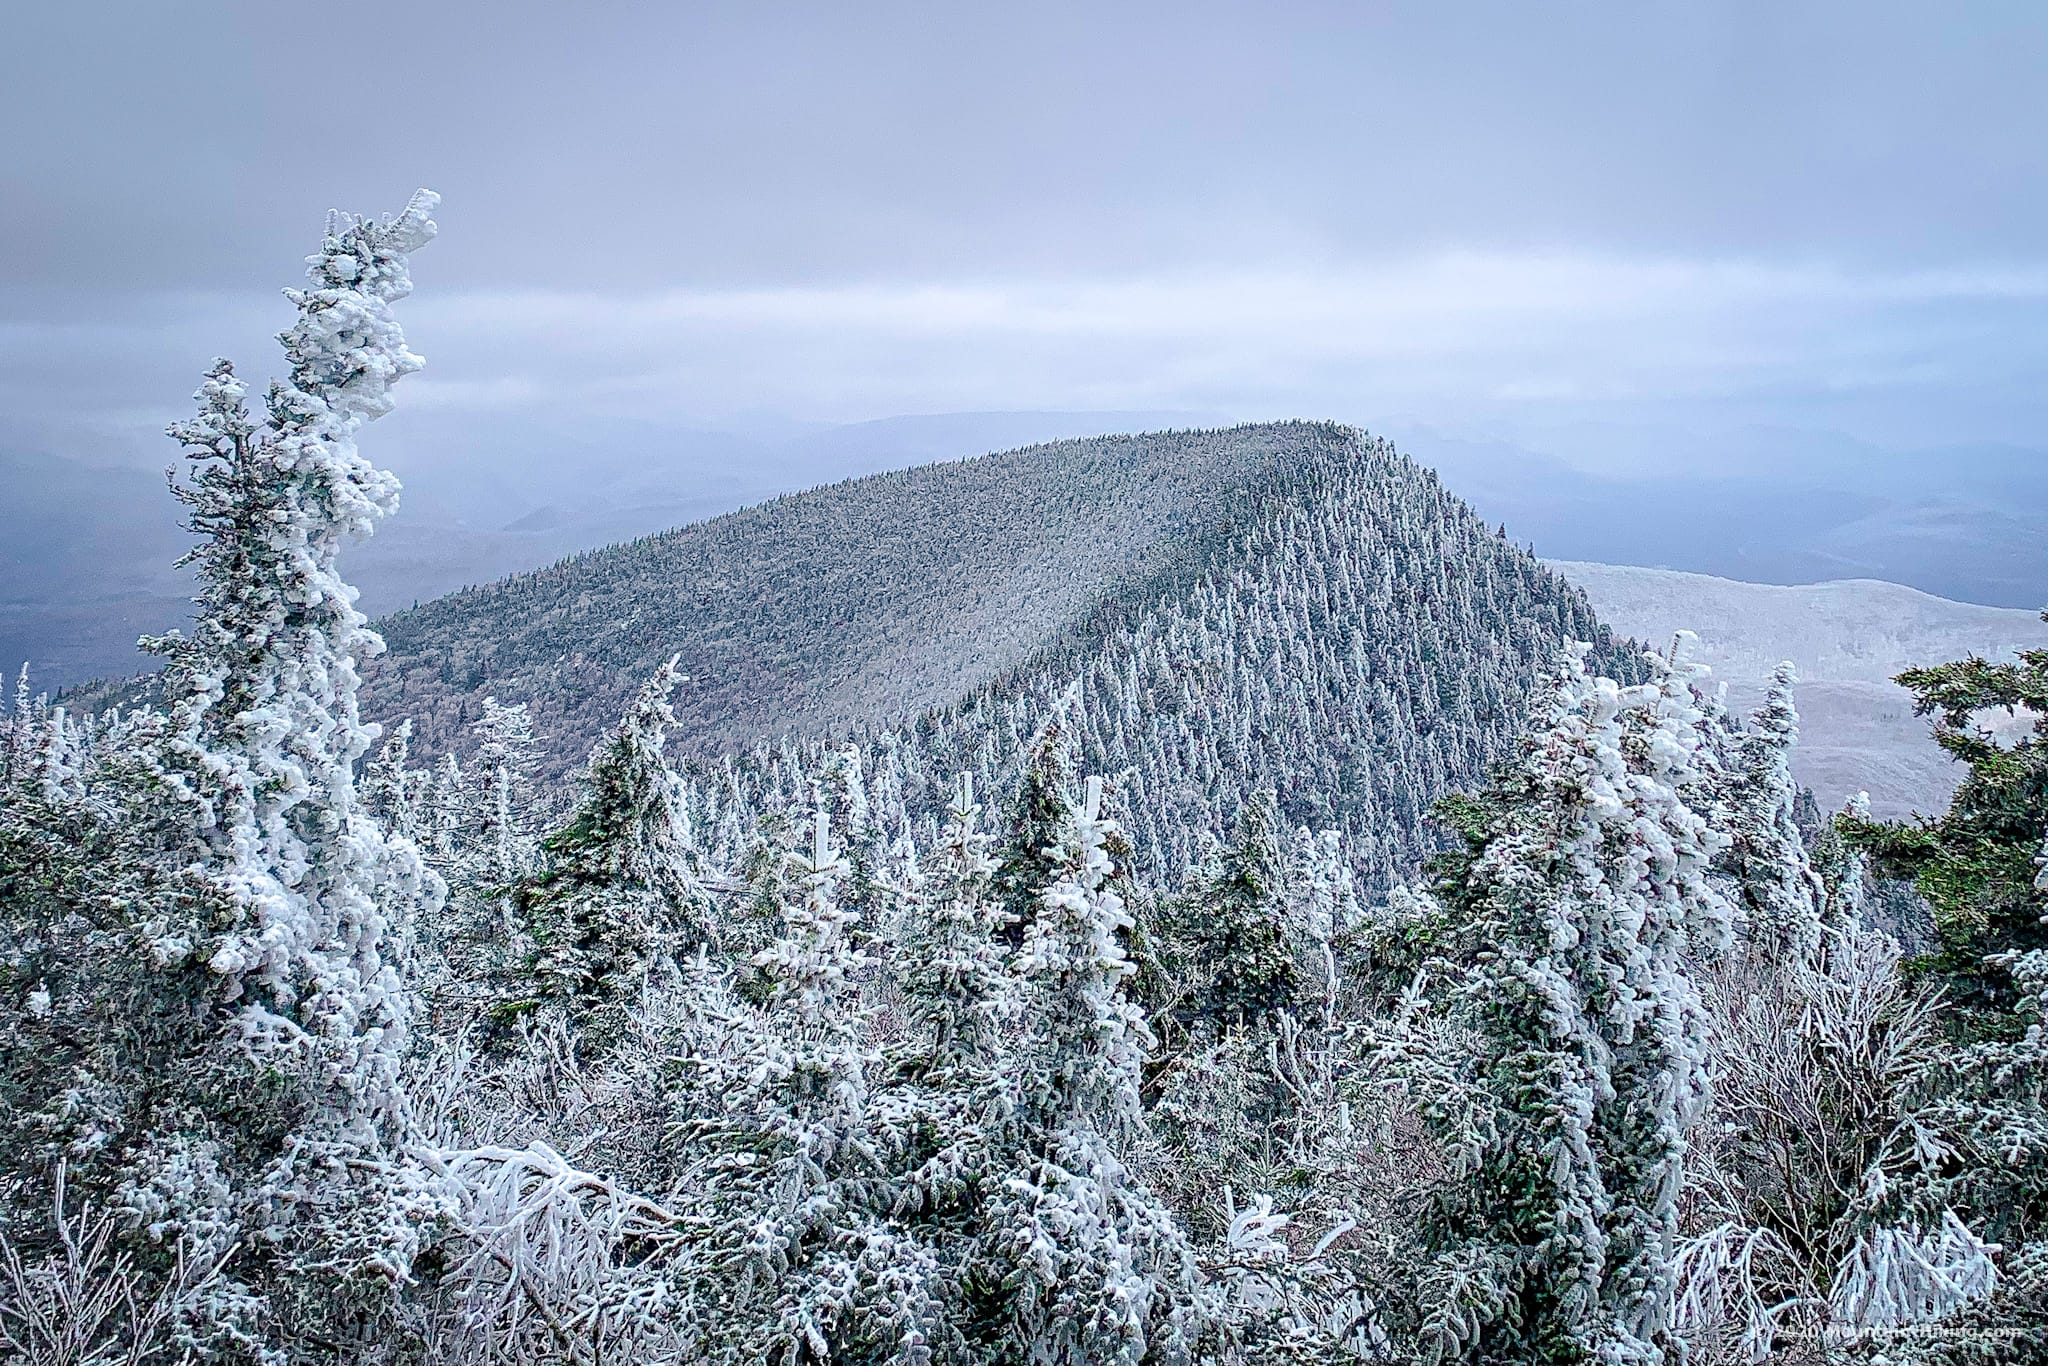 View of Wittenberg Mountain, Catskills, New York